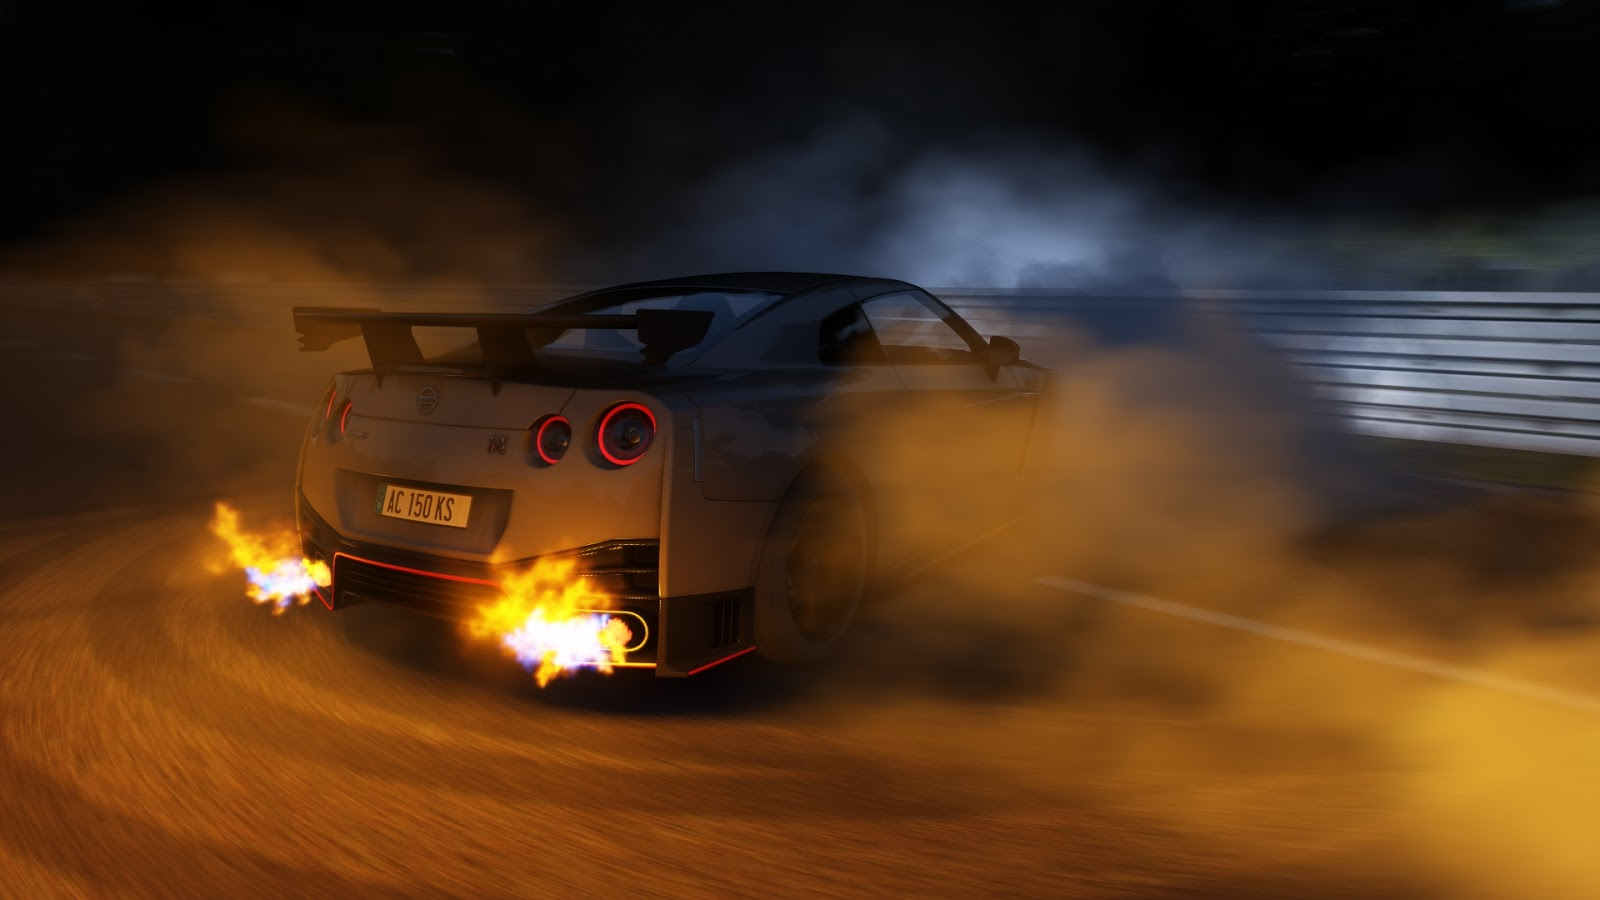 Screenshot Hd Nissan Gtr Hp Lemans